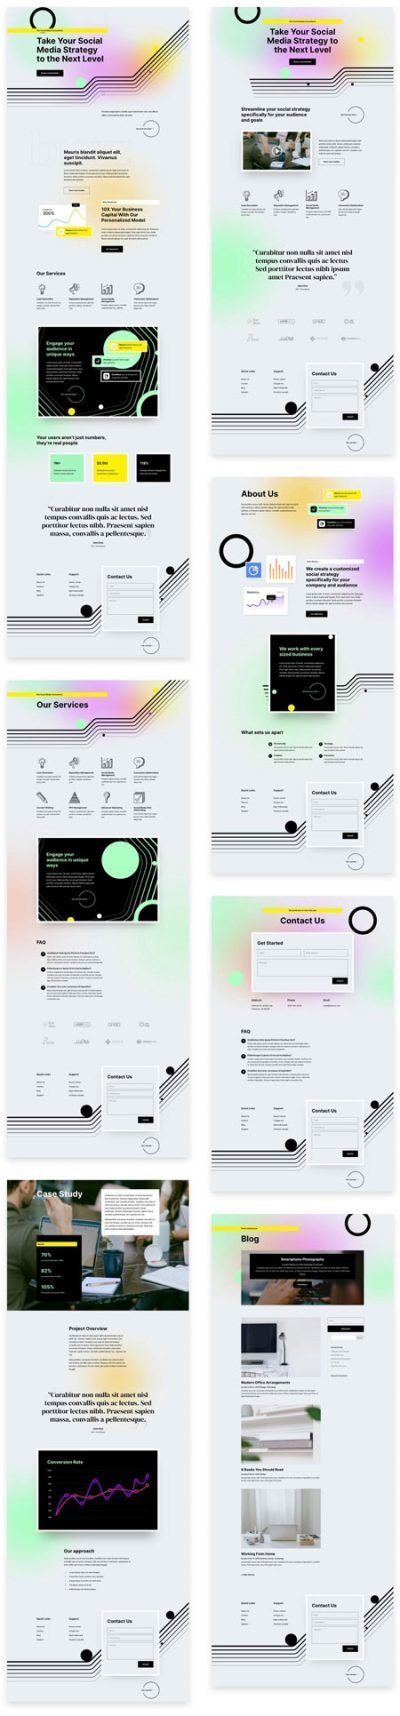 Social Media Consultant Layout Pack